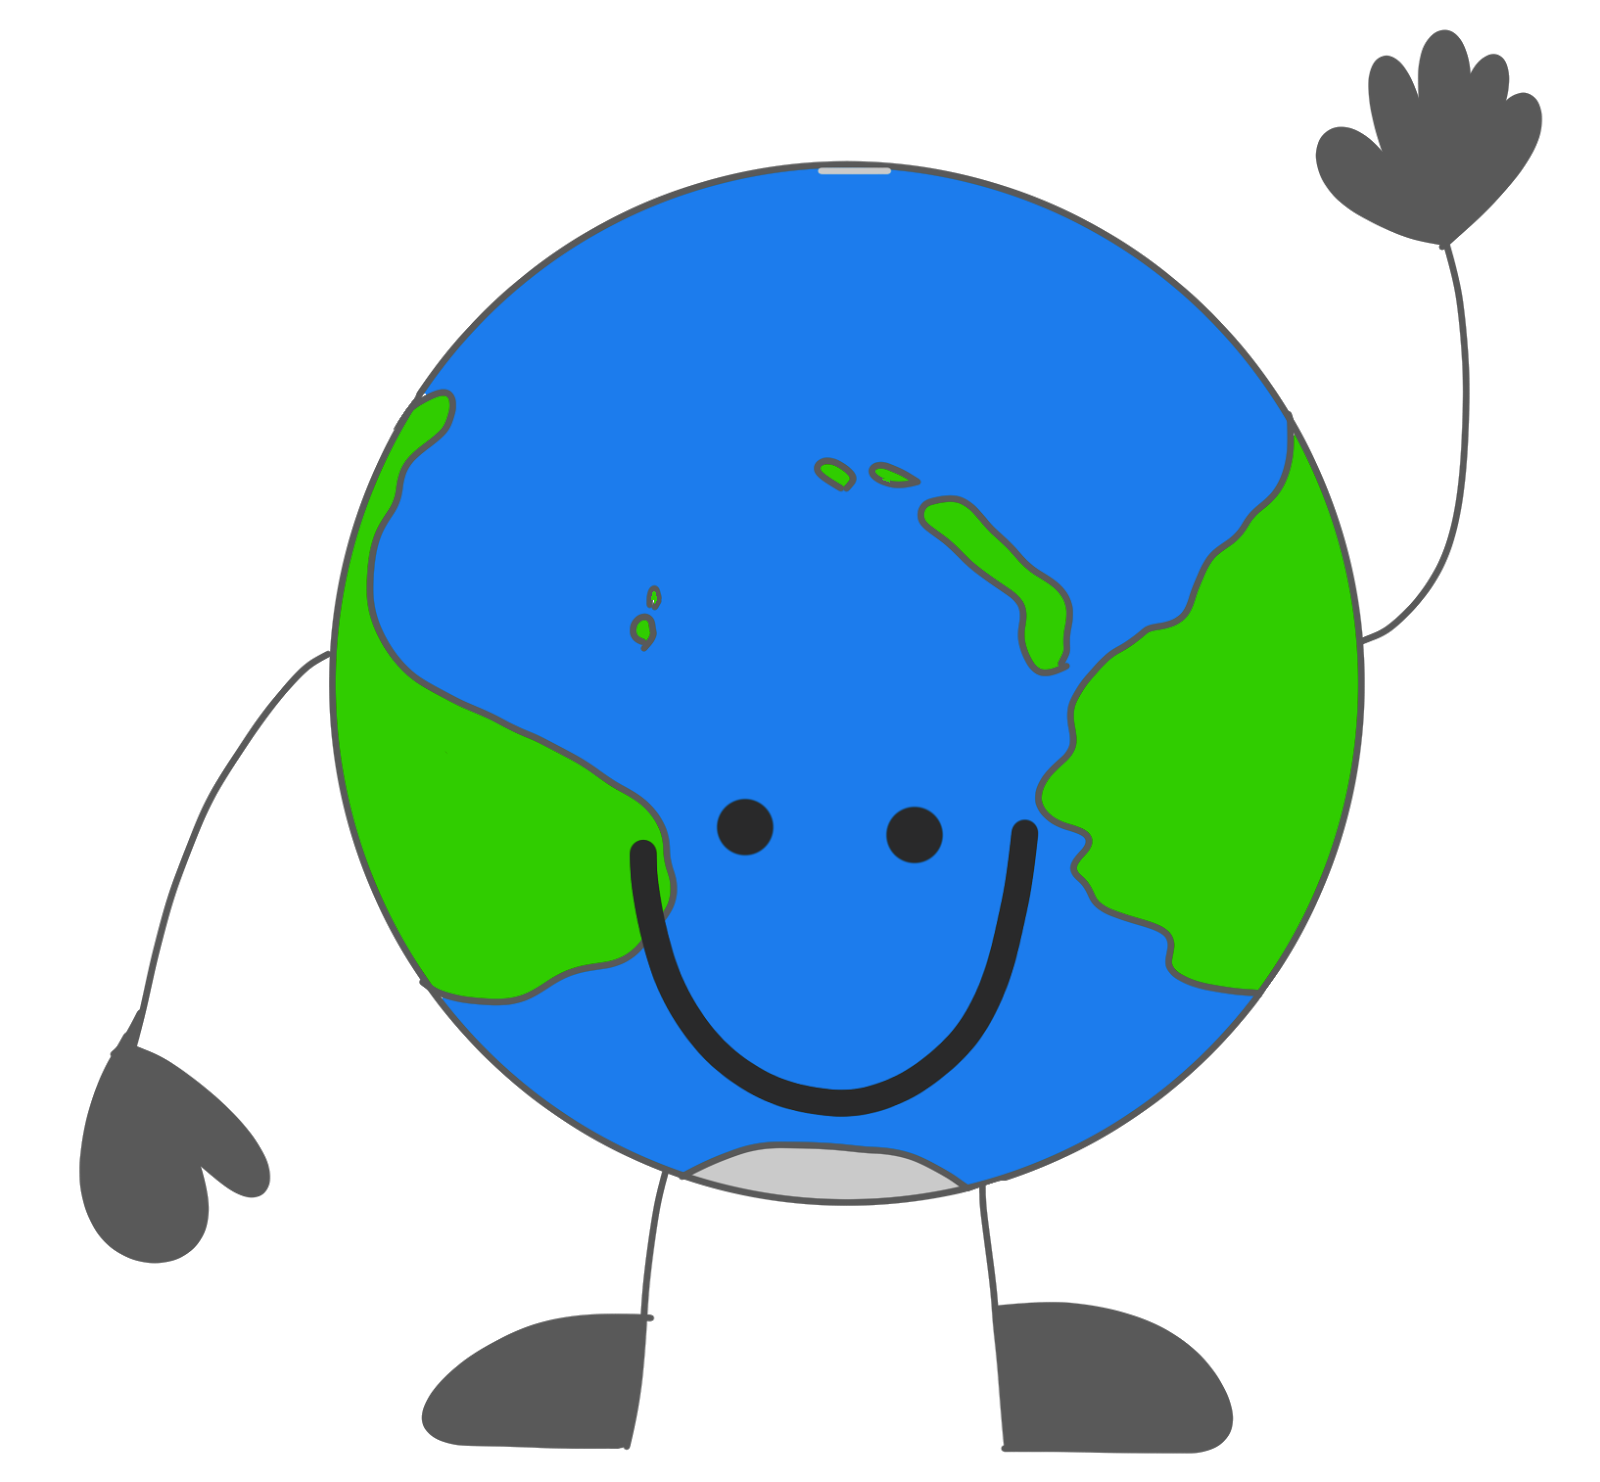 Free earth day clip art clipart 2 clipart